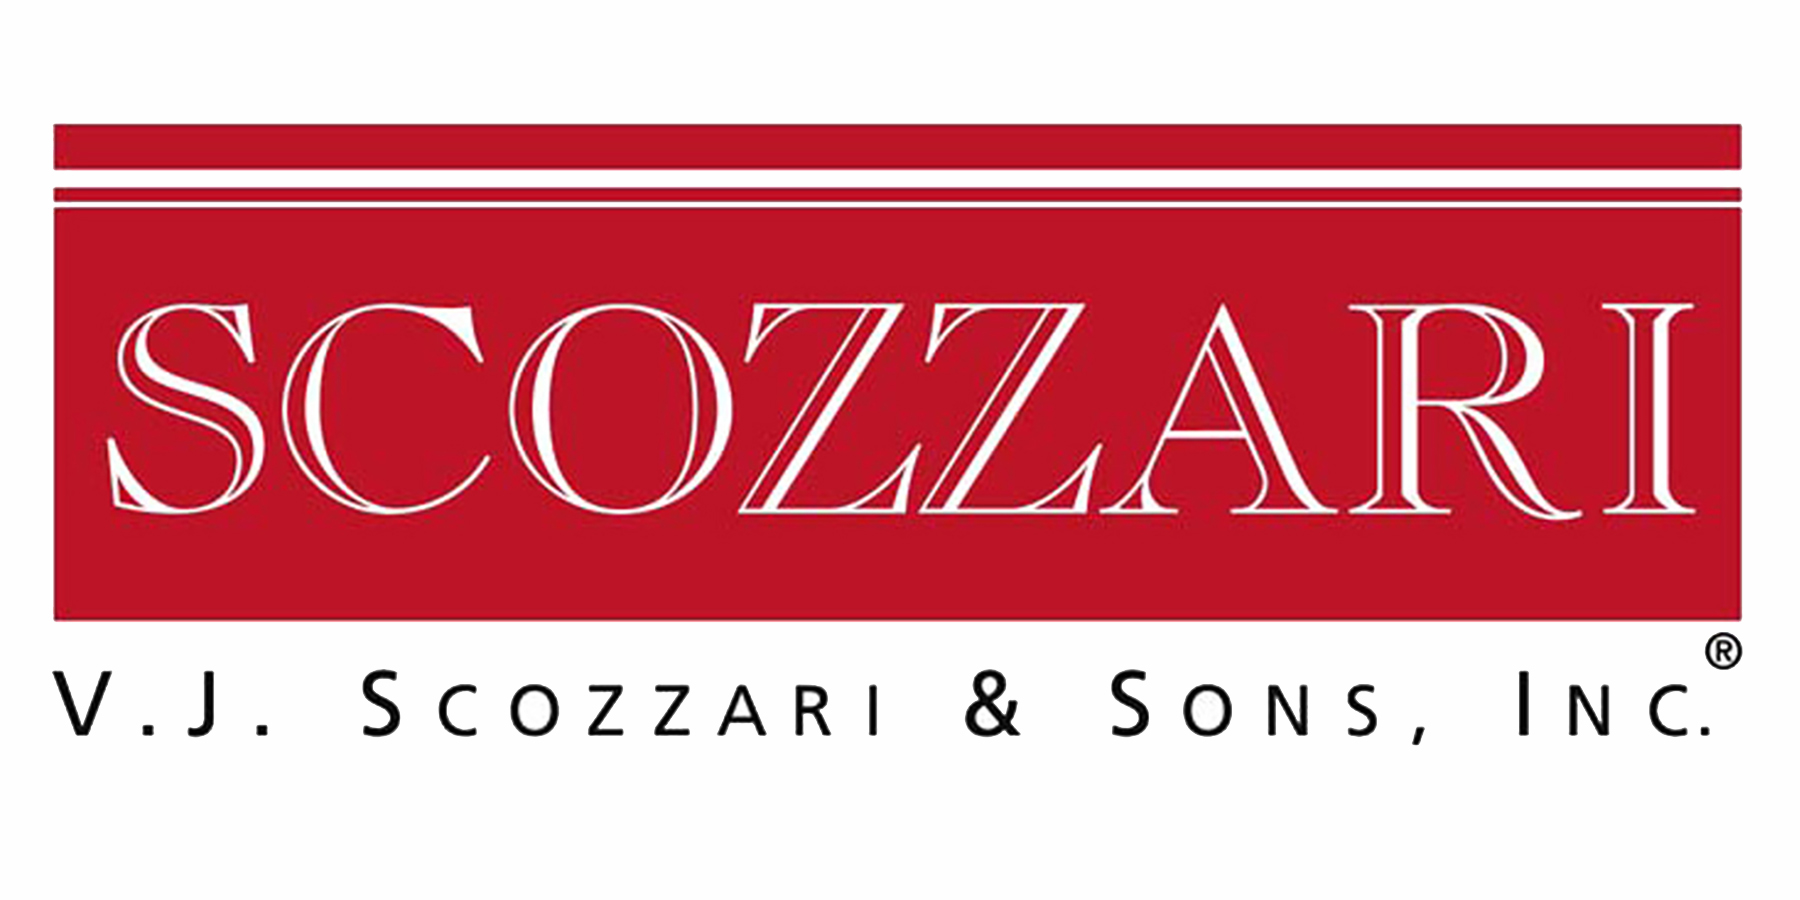 V. J. Scozzari & Sons, Inc.